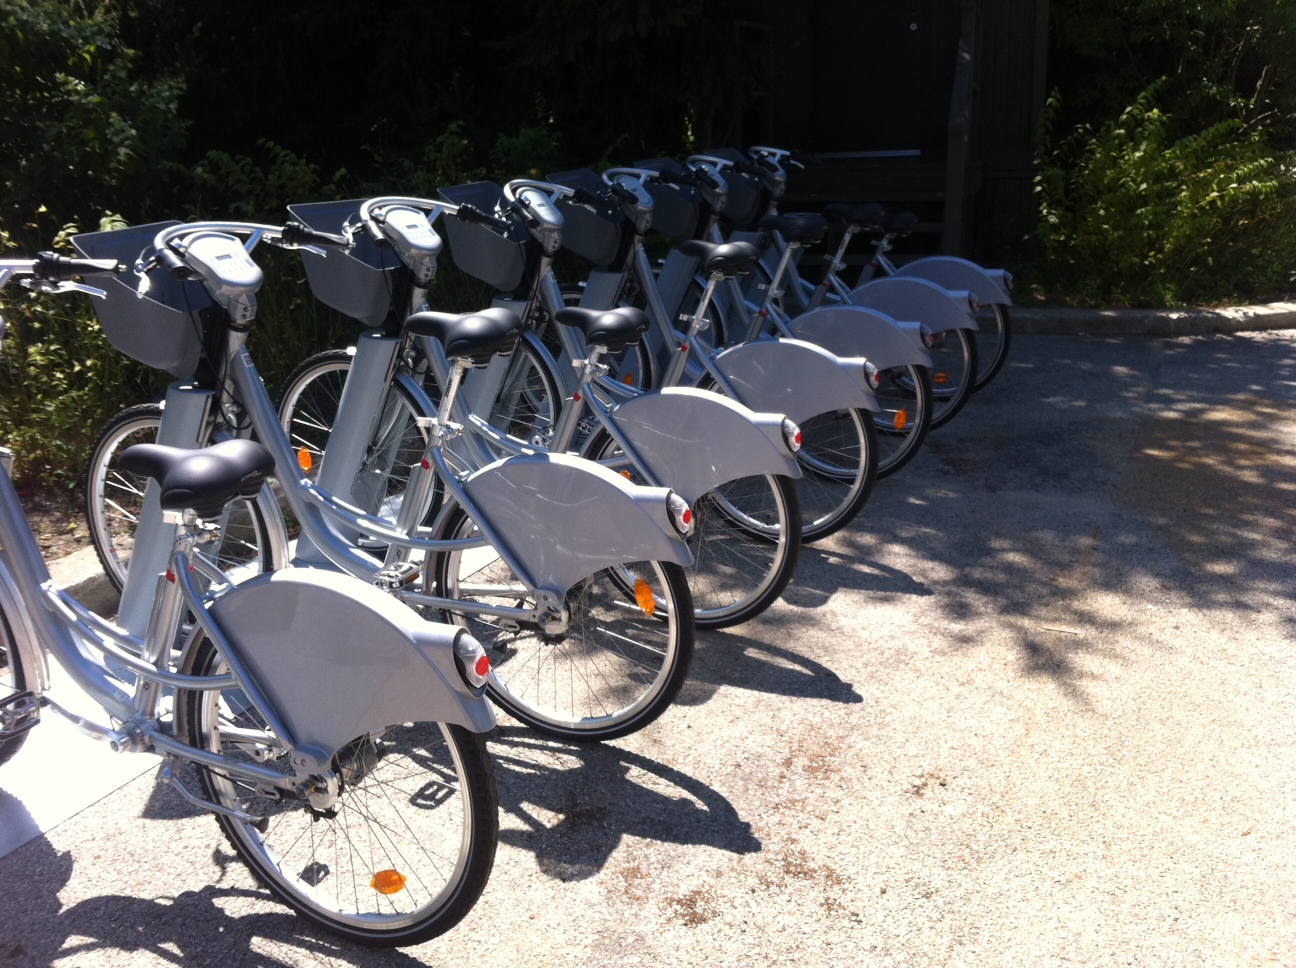 Rental bikes at the Garden.